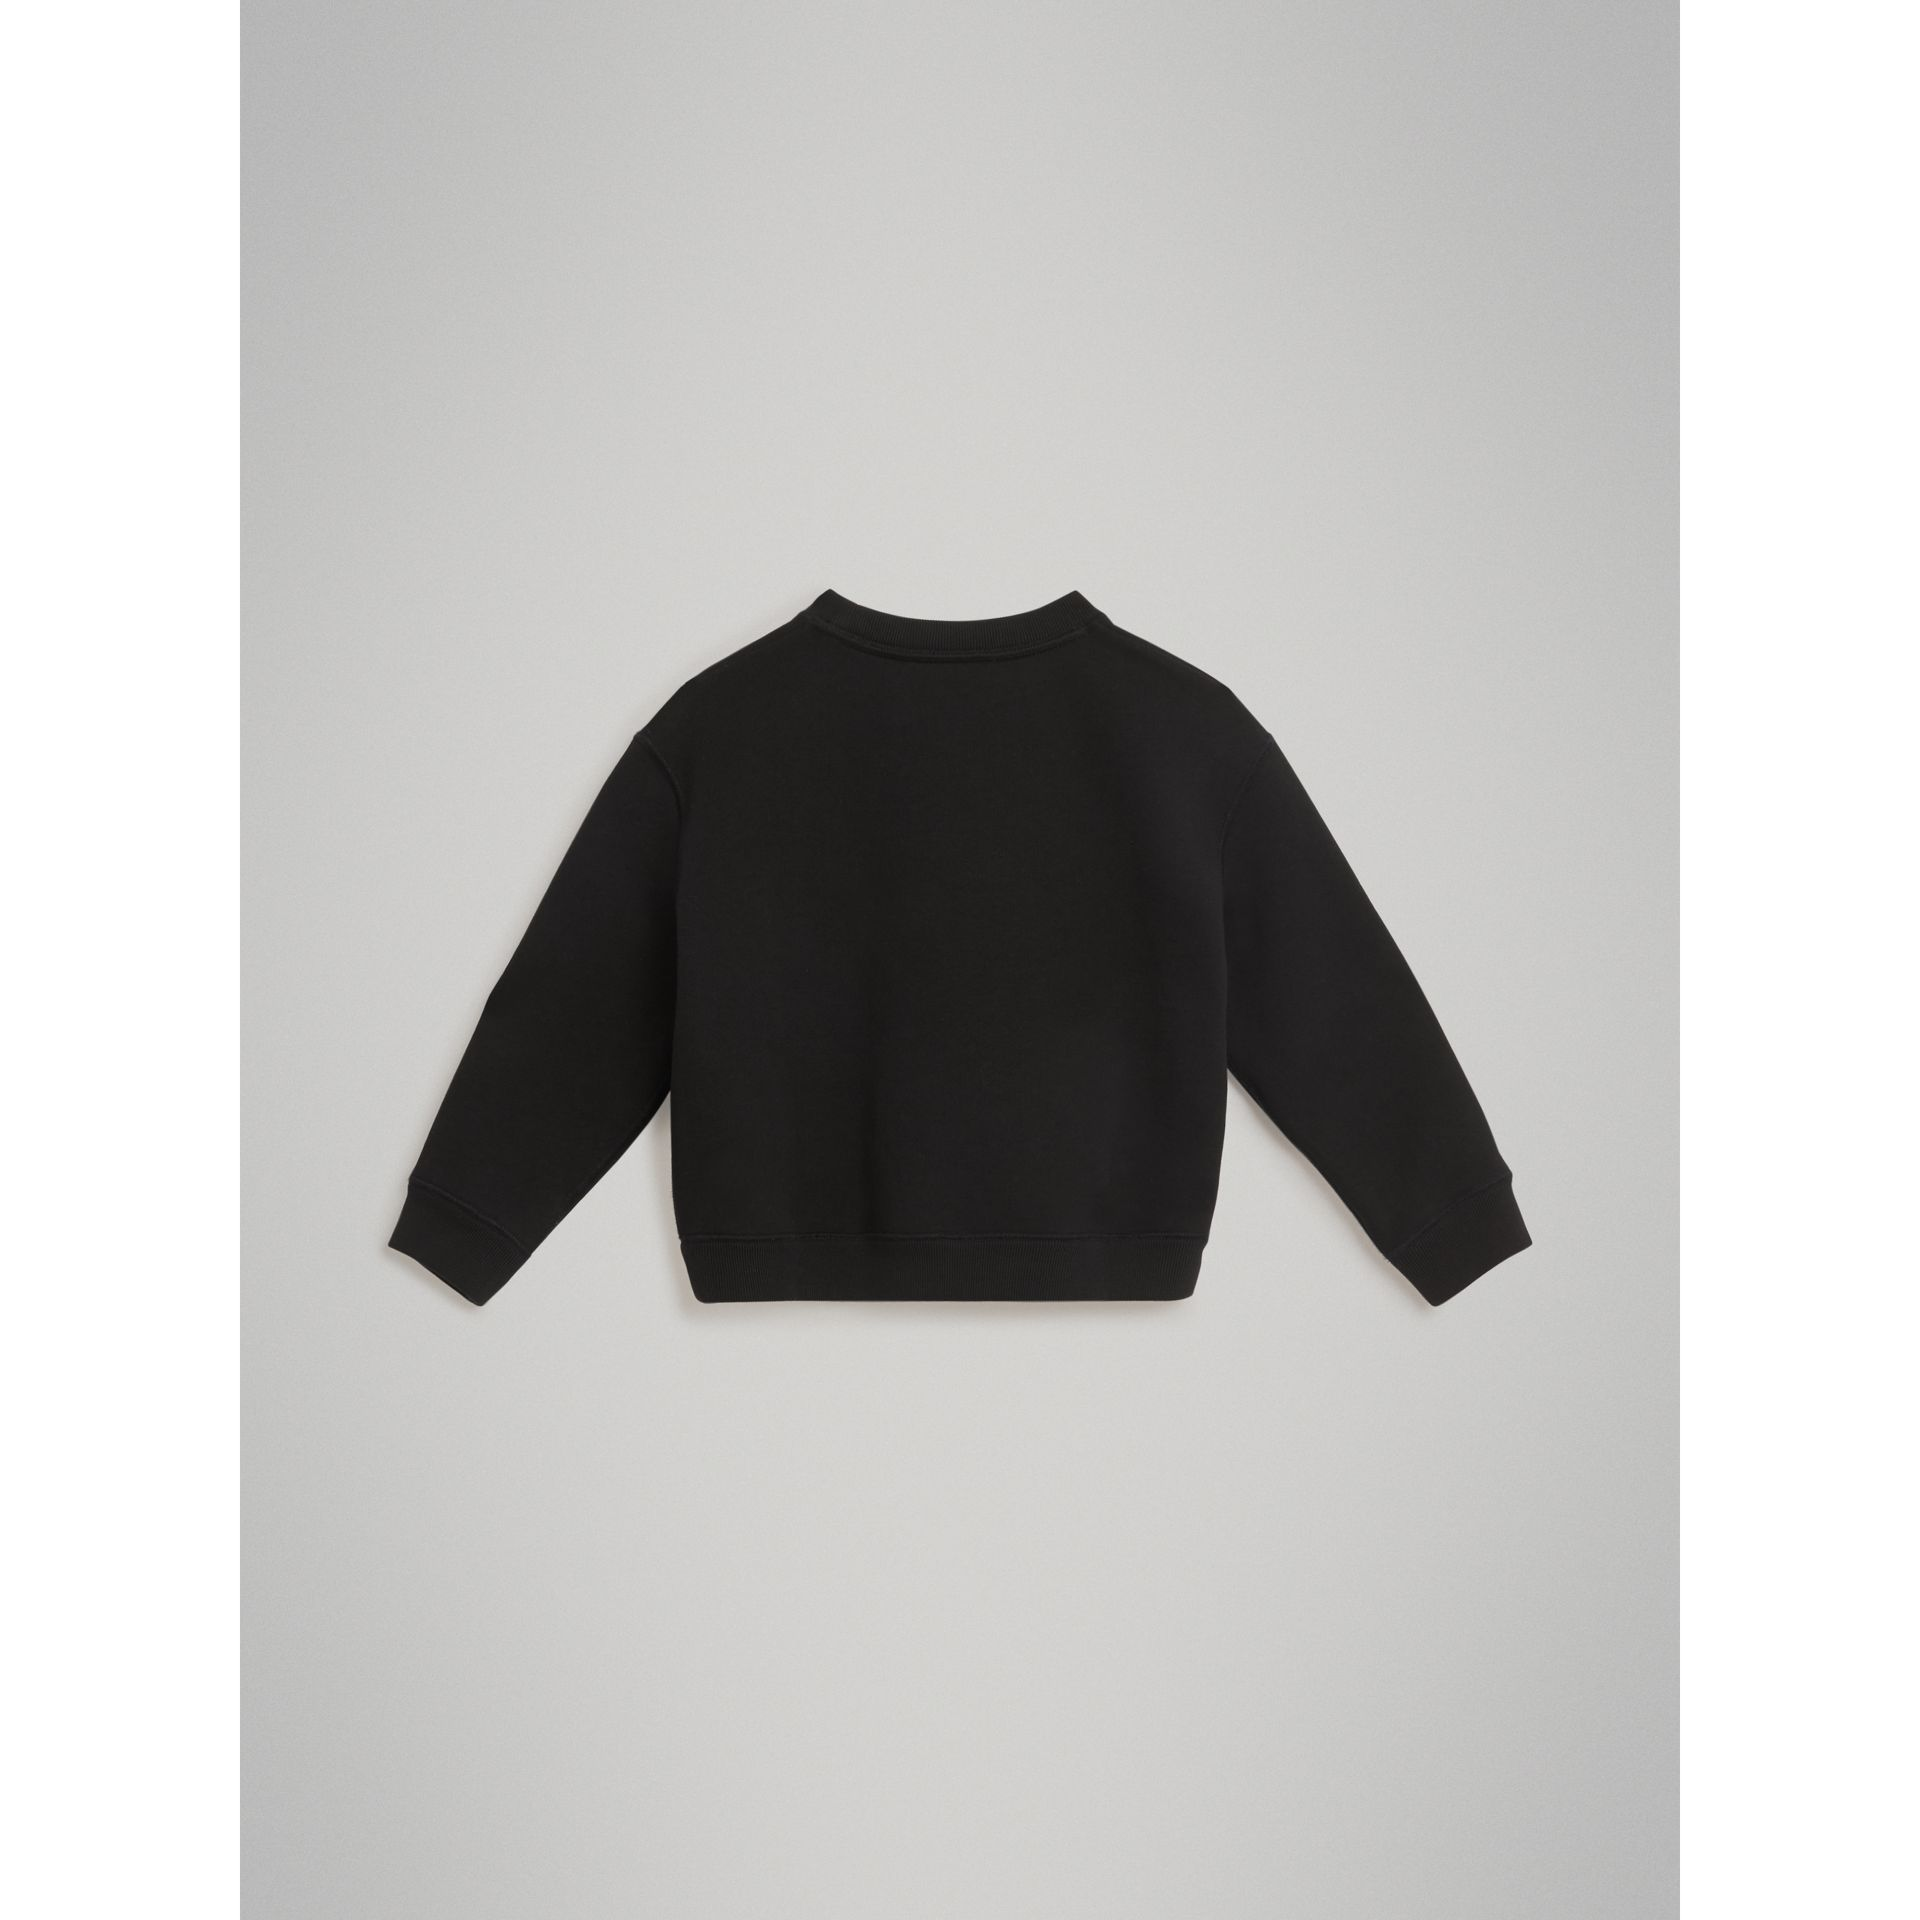 Sweat-shirt en jersey avec logo imprimé (Noir) | Burberry Canada - photo de la galerie 3